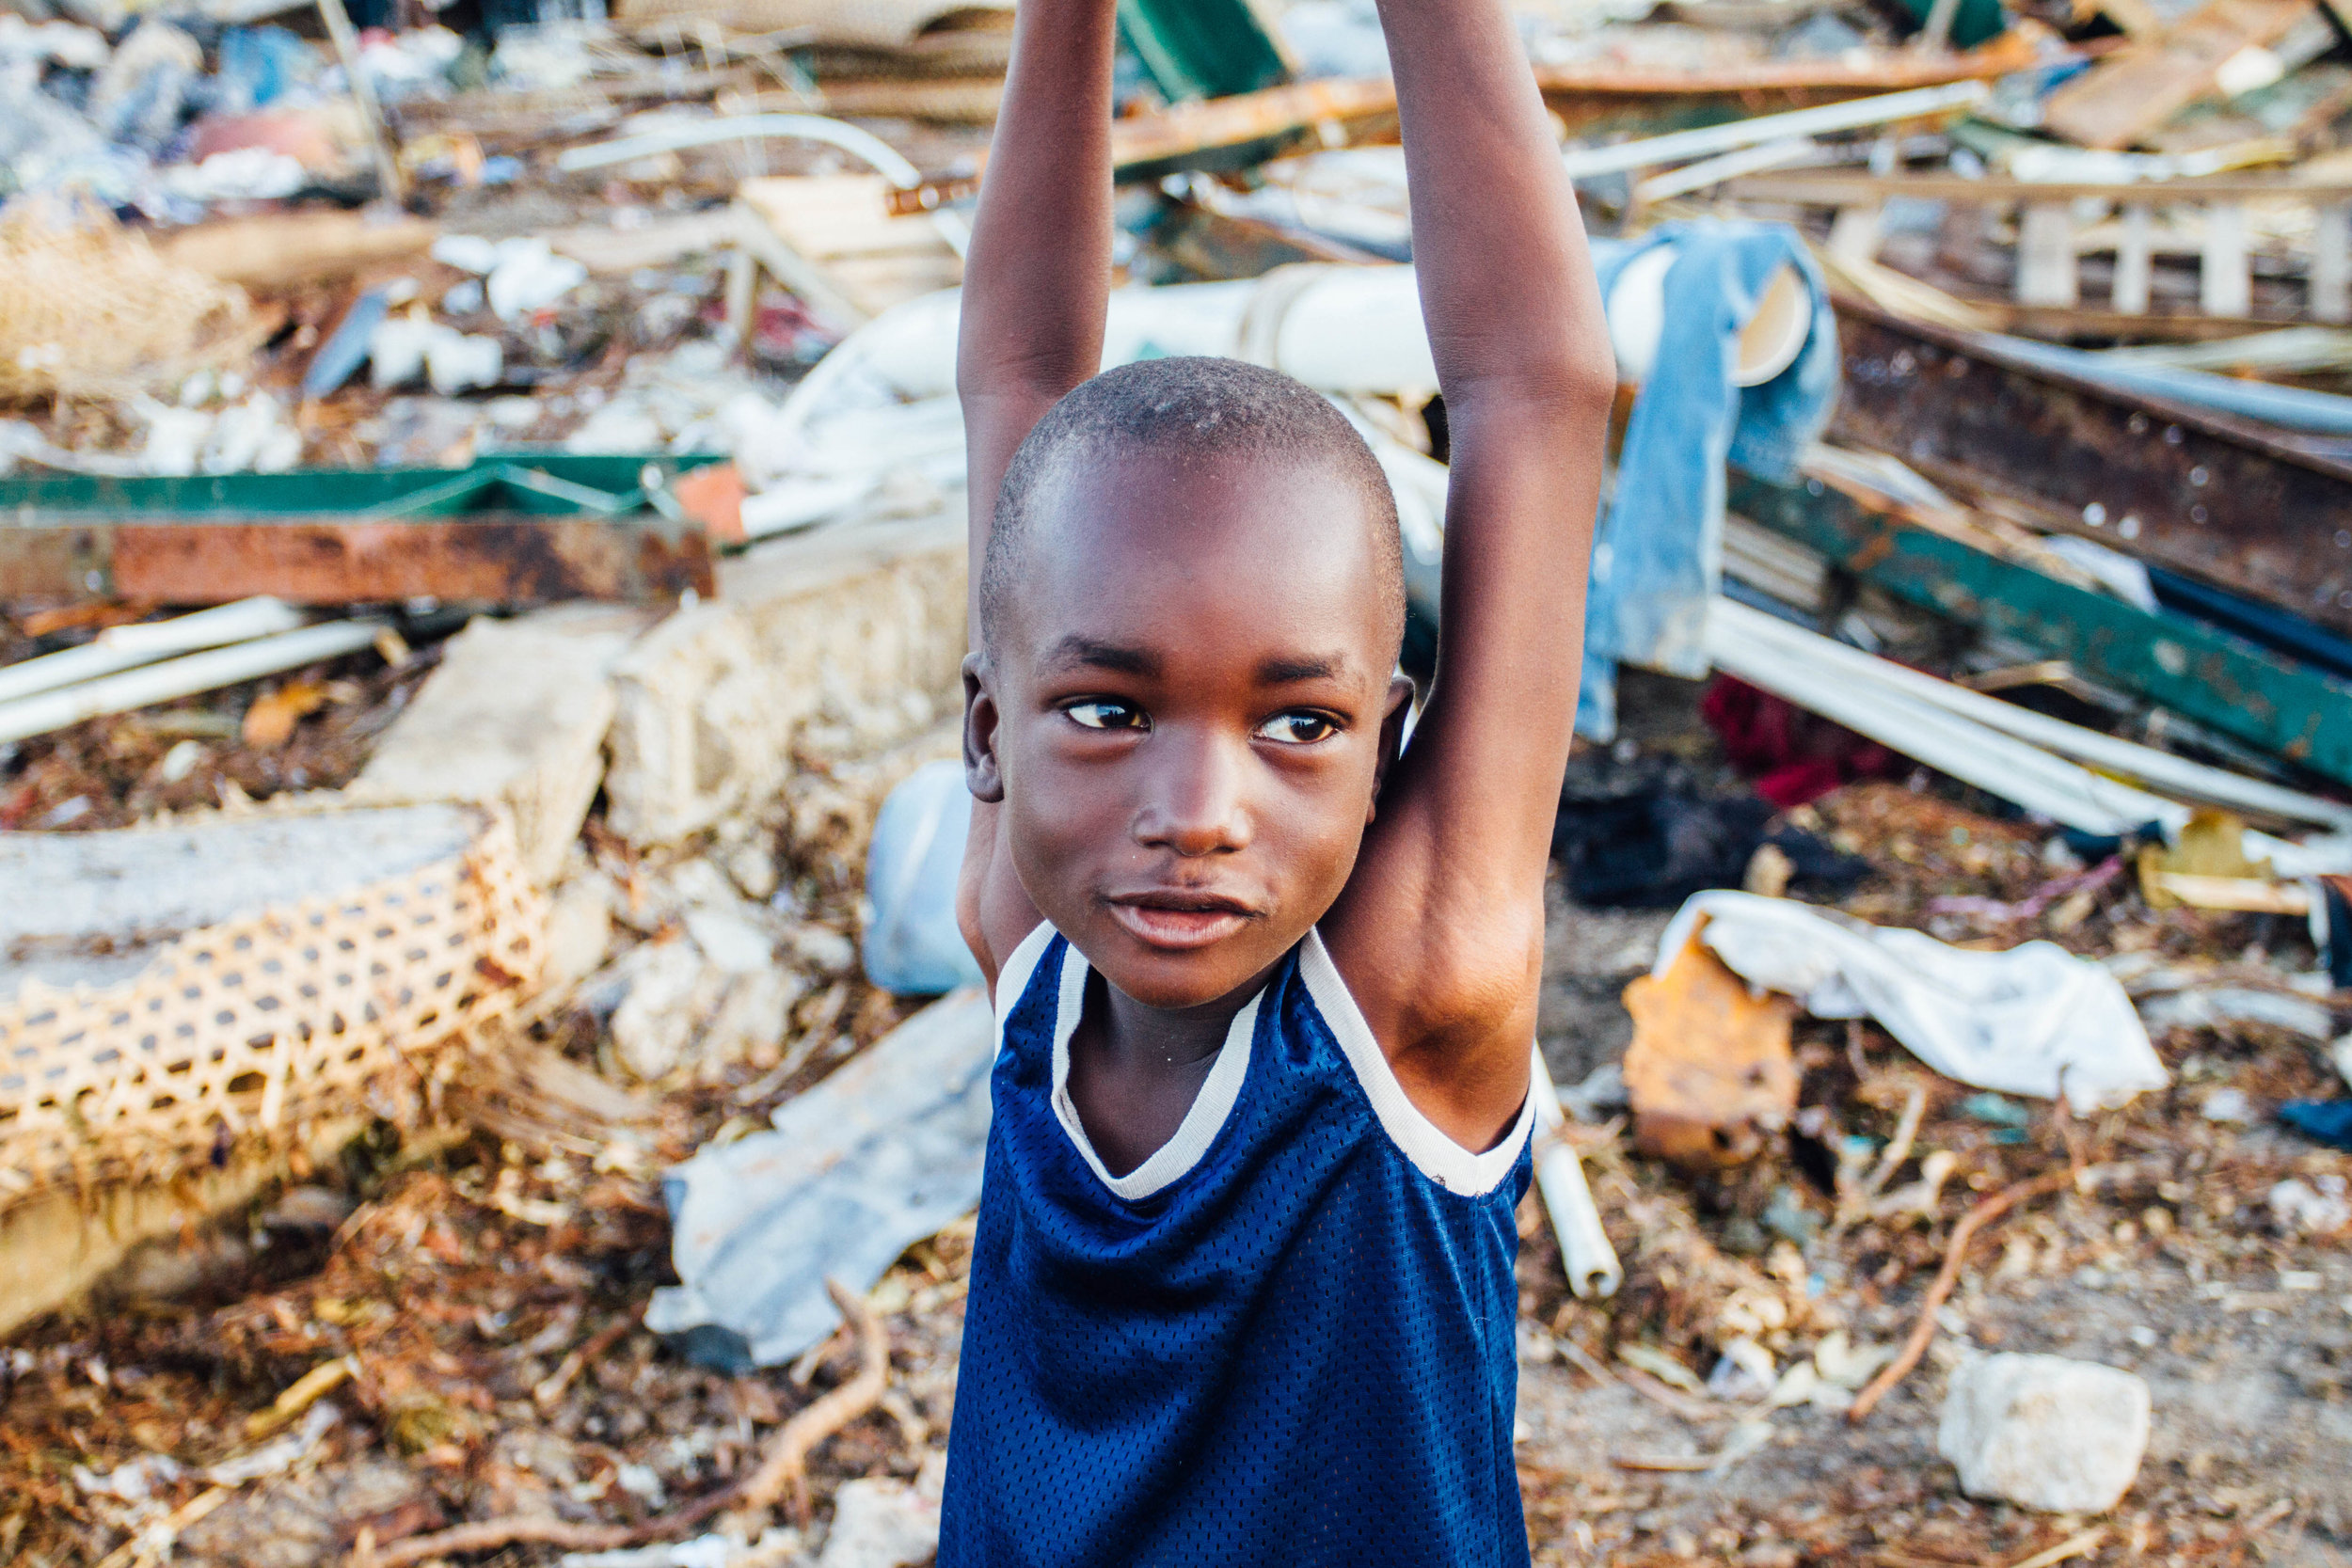 October 22nd  - This is Marvens, a soft spoken little guy from Anse d'Hainault, standing in the midst of his decimated village. . I'm headed back to Austin after spending a couple weeks helping with relief efforts after Hurricane Matthew swept through Haiti. . The days have gone by in a blur, but when I look back on the past 16 days in Haiti, the words that come to mind are: devastation, unity, desperation, resilience, survival, strength, & HOPE. . As the rebuilding continues, my anthem for the Haitian people is Romans 12:12 - Rejoice in Hope. Be patient in tribulation. Be constant in Prayer. . What the enemy means for evil, God will use for good. I've firsthand seen the beginnings of this & know that He is faithful.